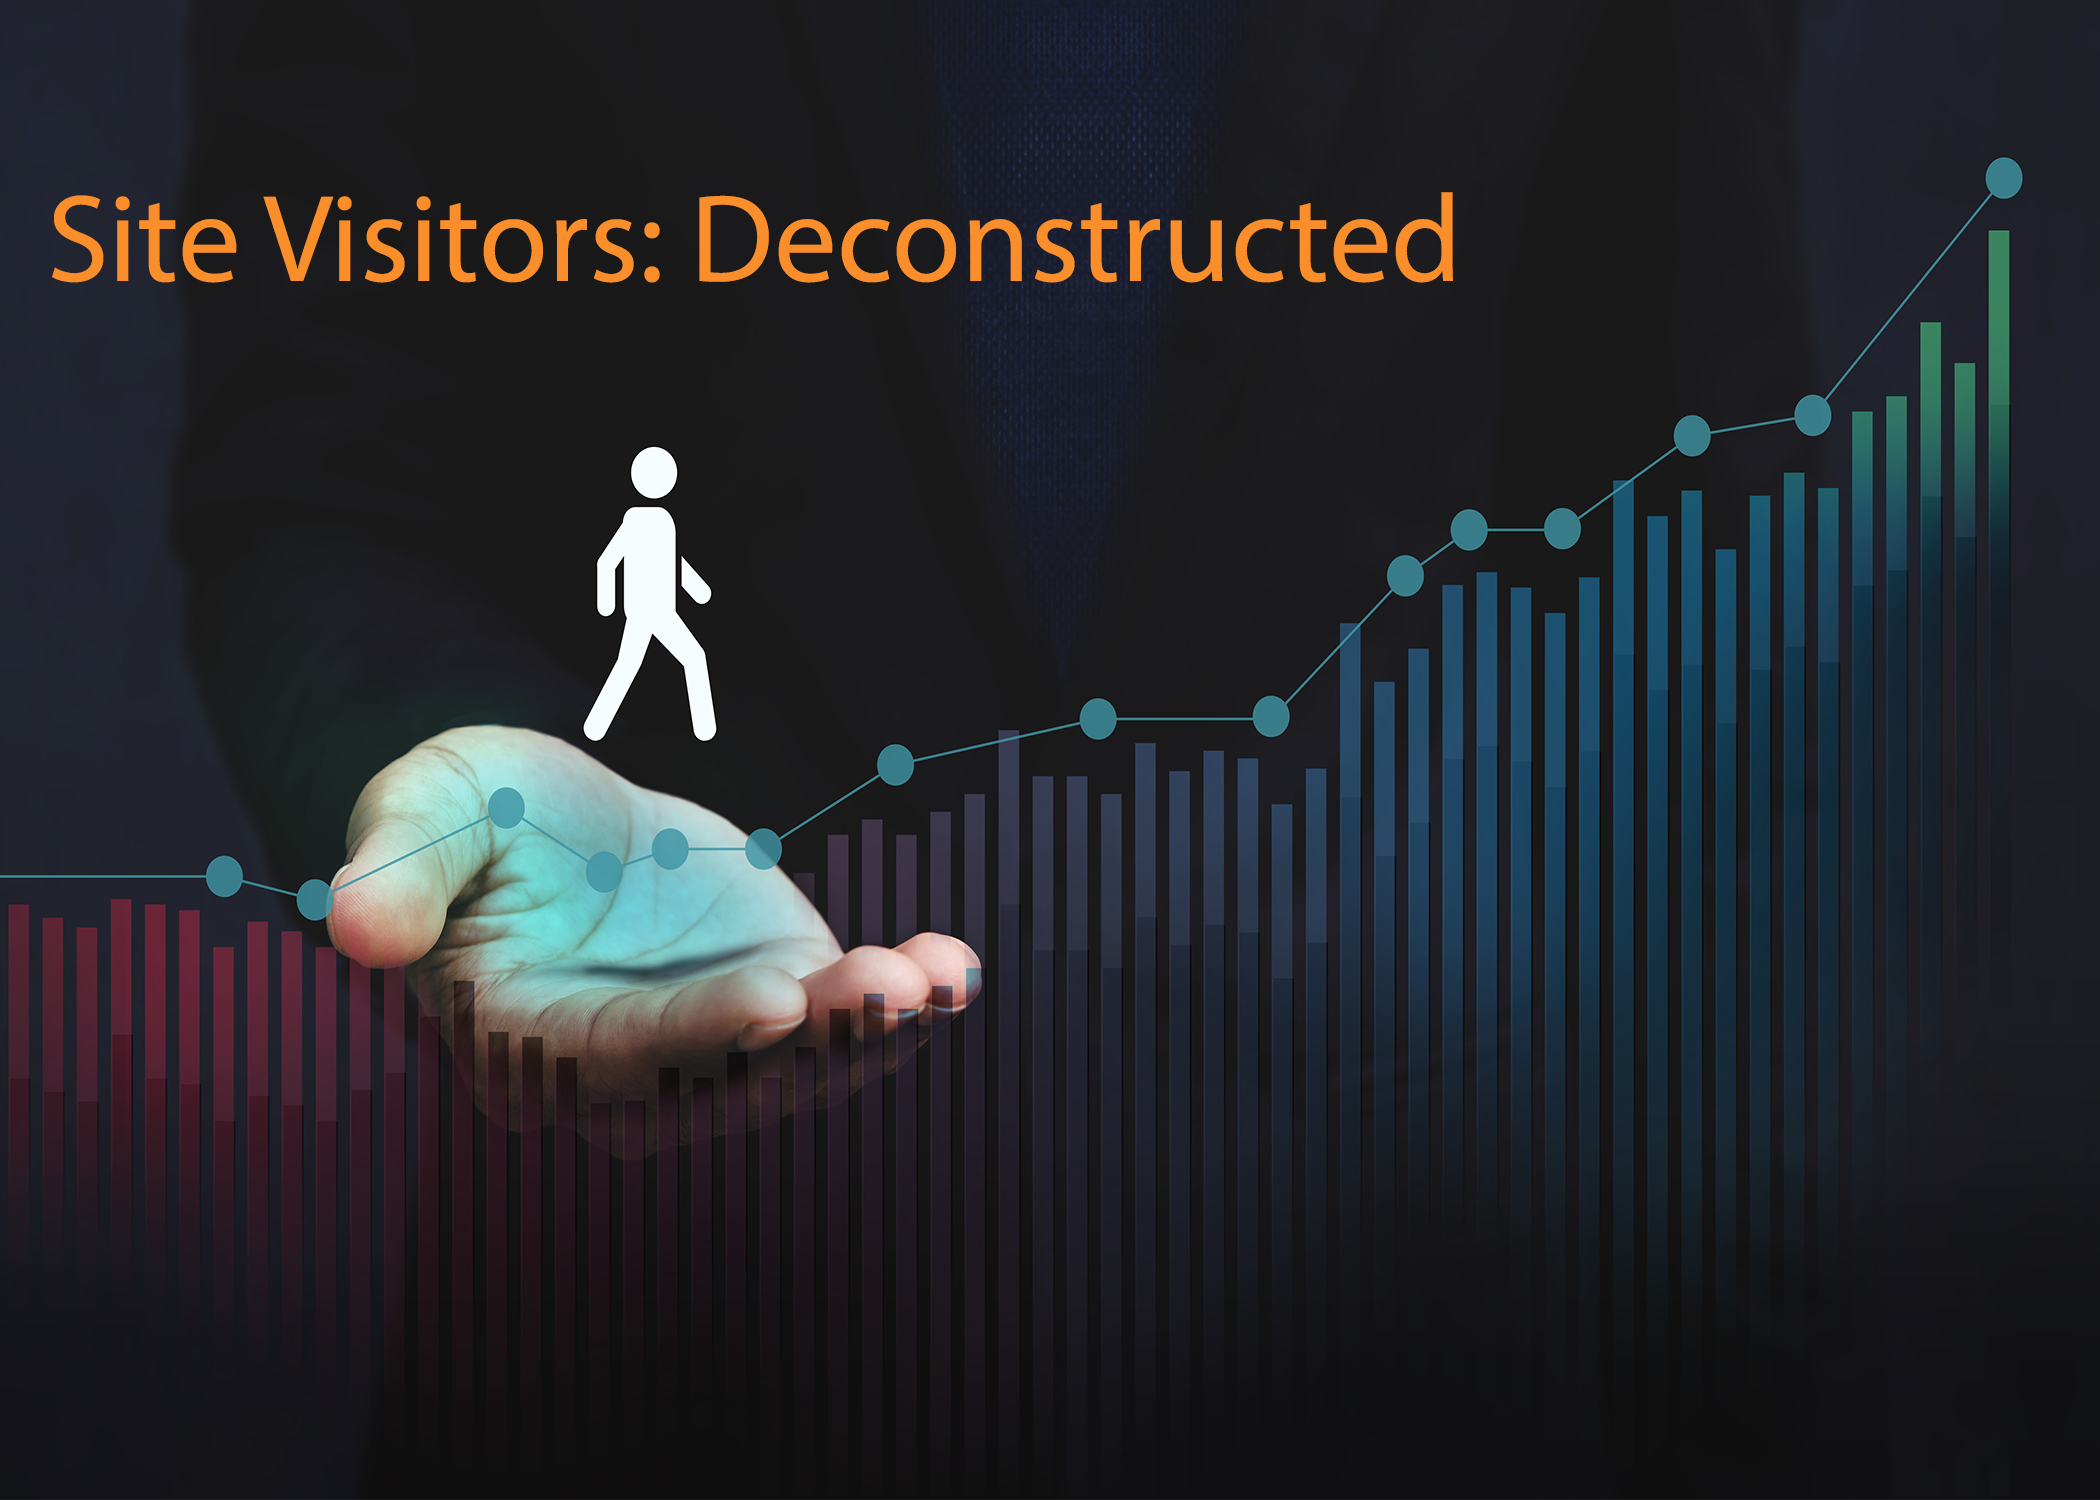 Site Visitors: Deconstructed